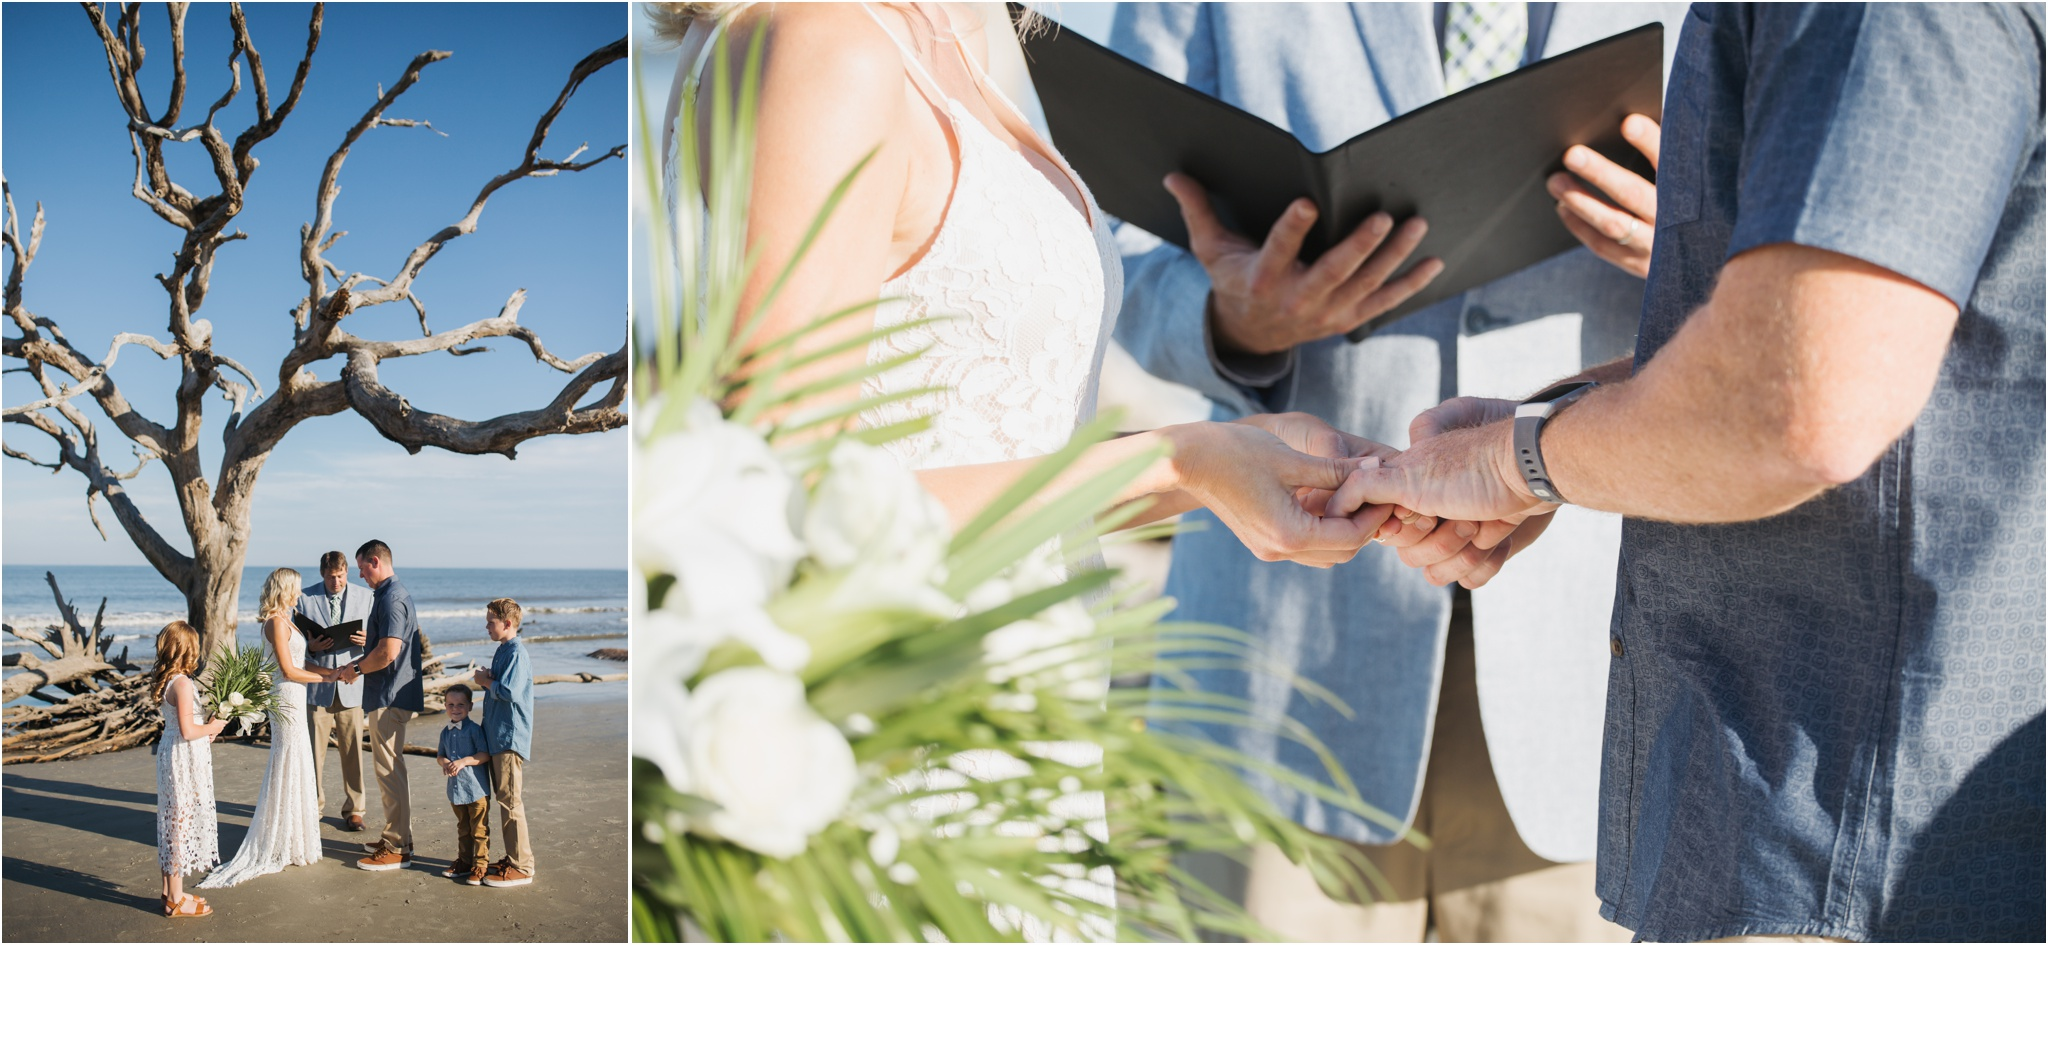 Rainey_Gregg_Photography_St._Simons_Island_Georgia_California_Wedding_Portrait_Photography_1571.jpg